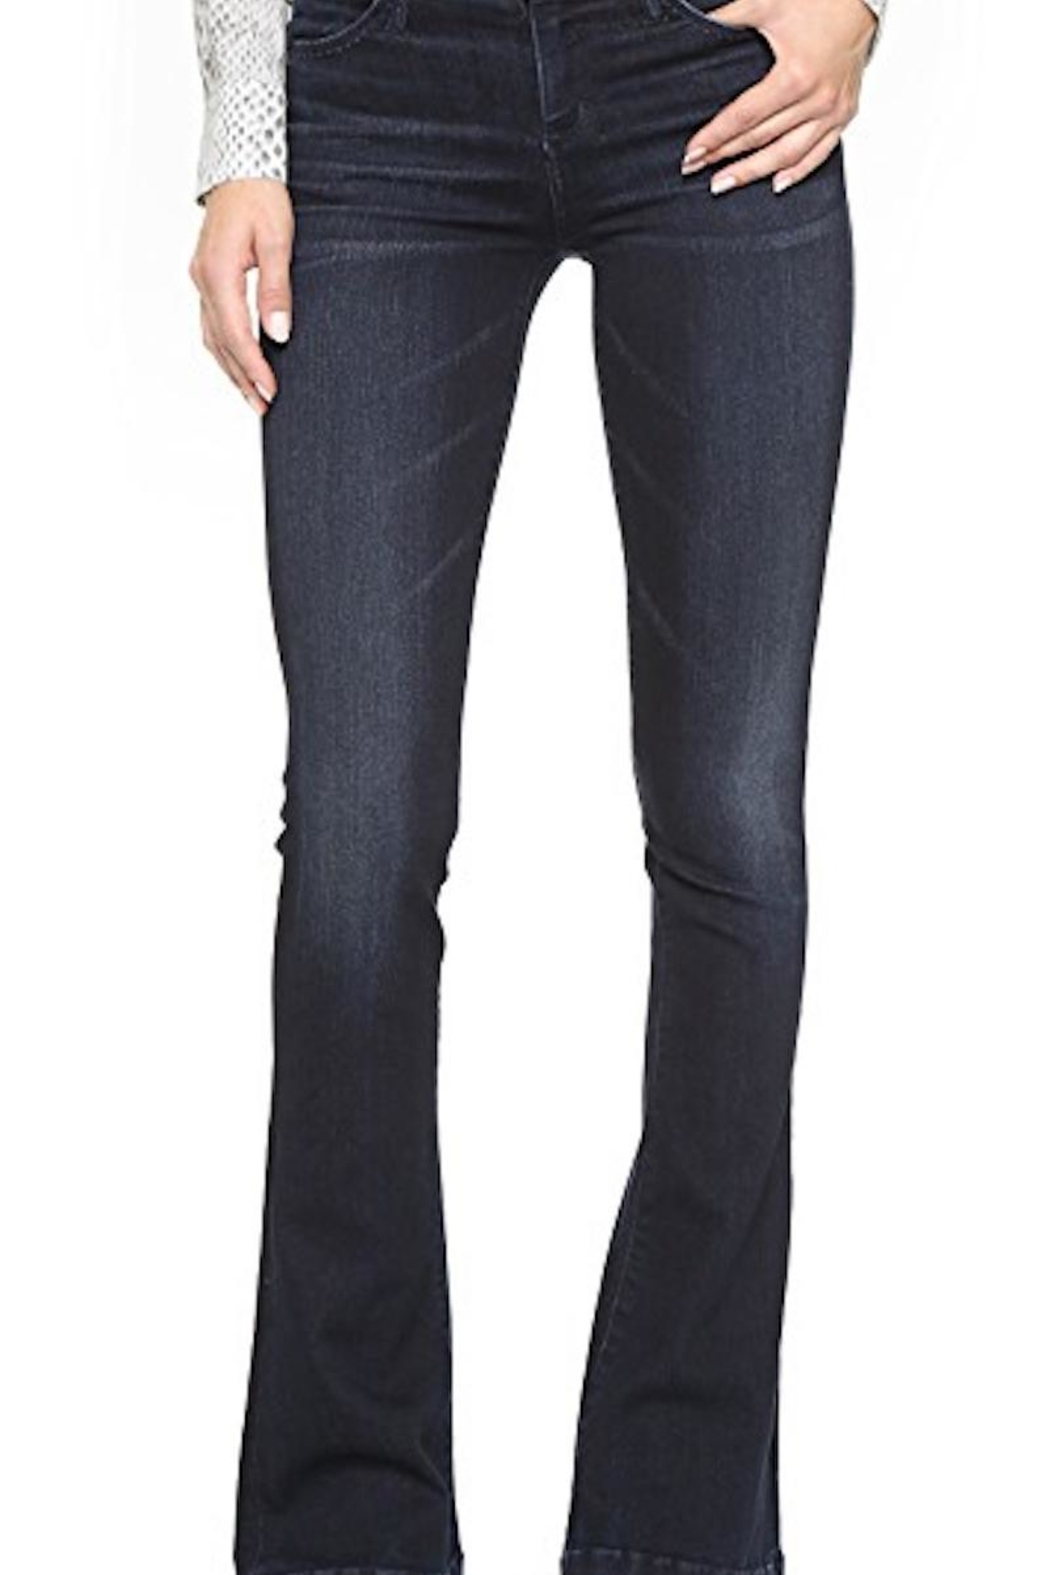 goldsign Flare Leg Jeans - Main Image